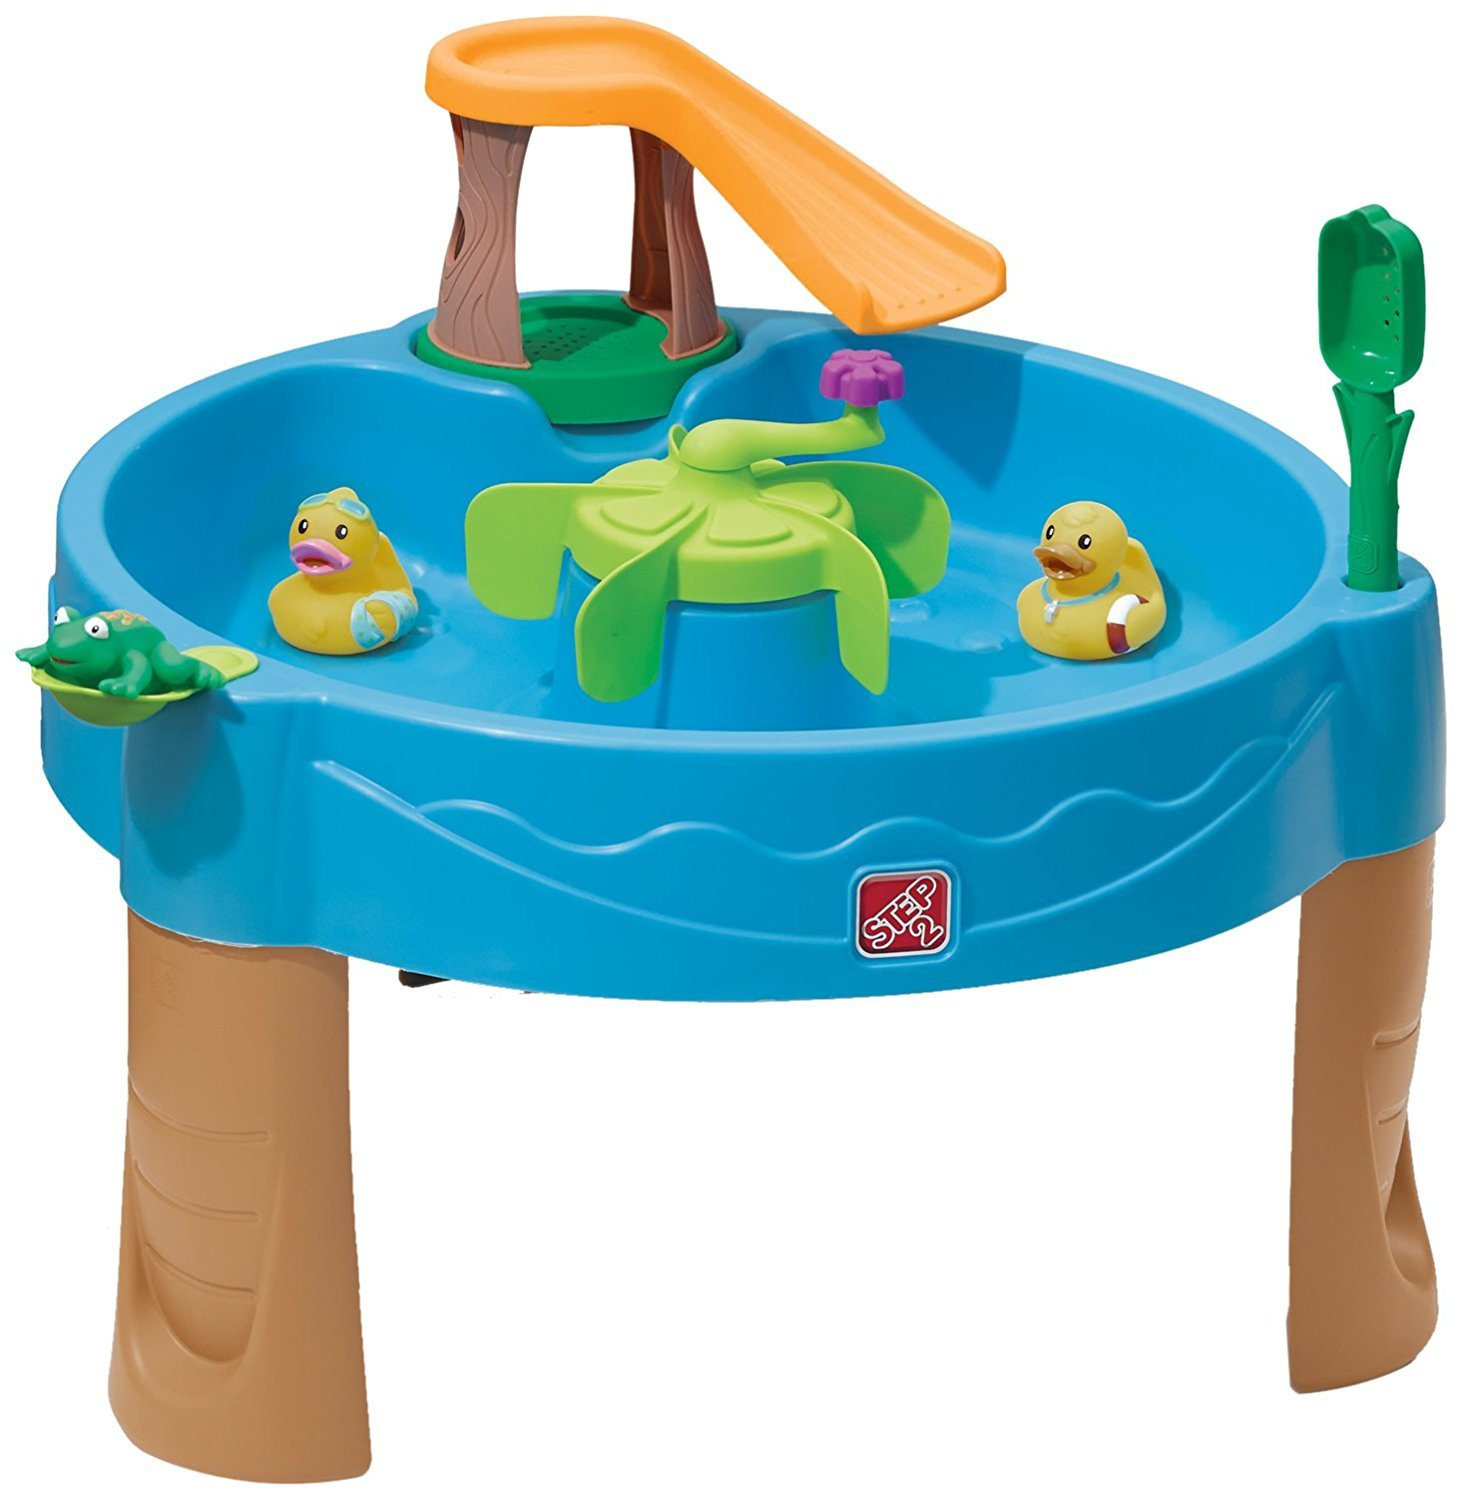 Step2 Duck Pond Water Table (Deluxe Pack - Includes Ducks, Frogs, Launcher and Spinner)